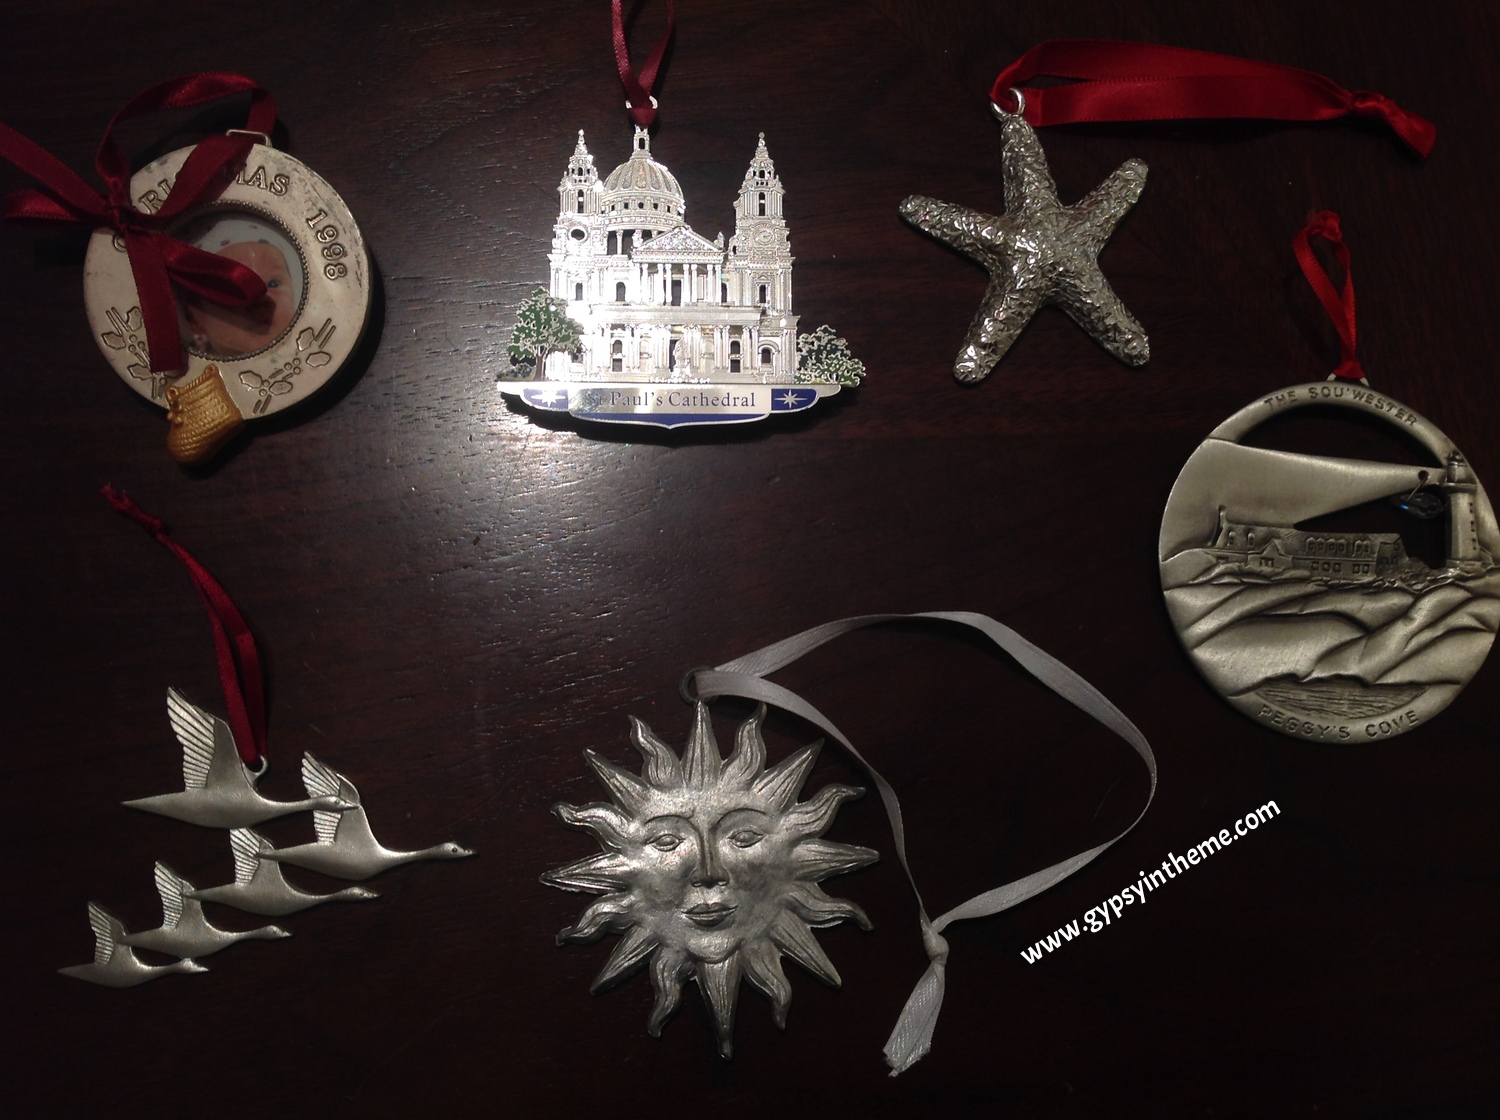 A collection of pewter ornaments from over the years ... from top left, clockwise:  (1) a picture of my godson from New Brunswick, and souvenirs from trips to (2) London, (3) PEI, (4) Halifax, (5) Zurich, and (6) the Cabot Trail.